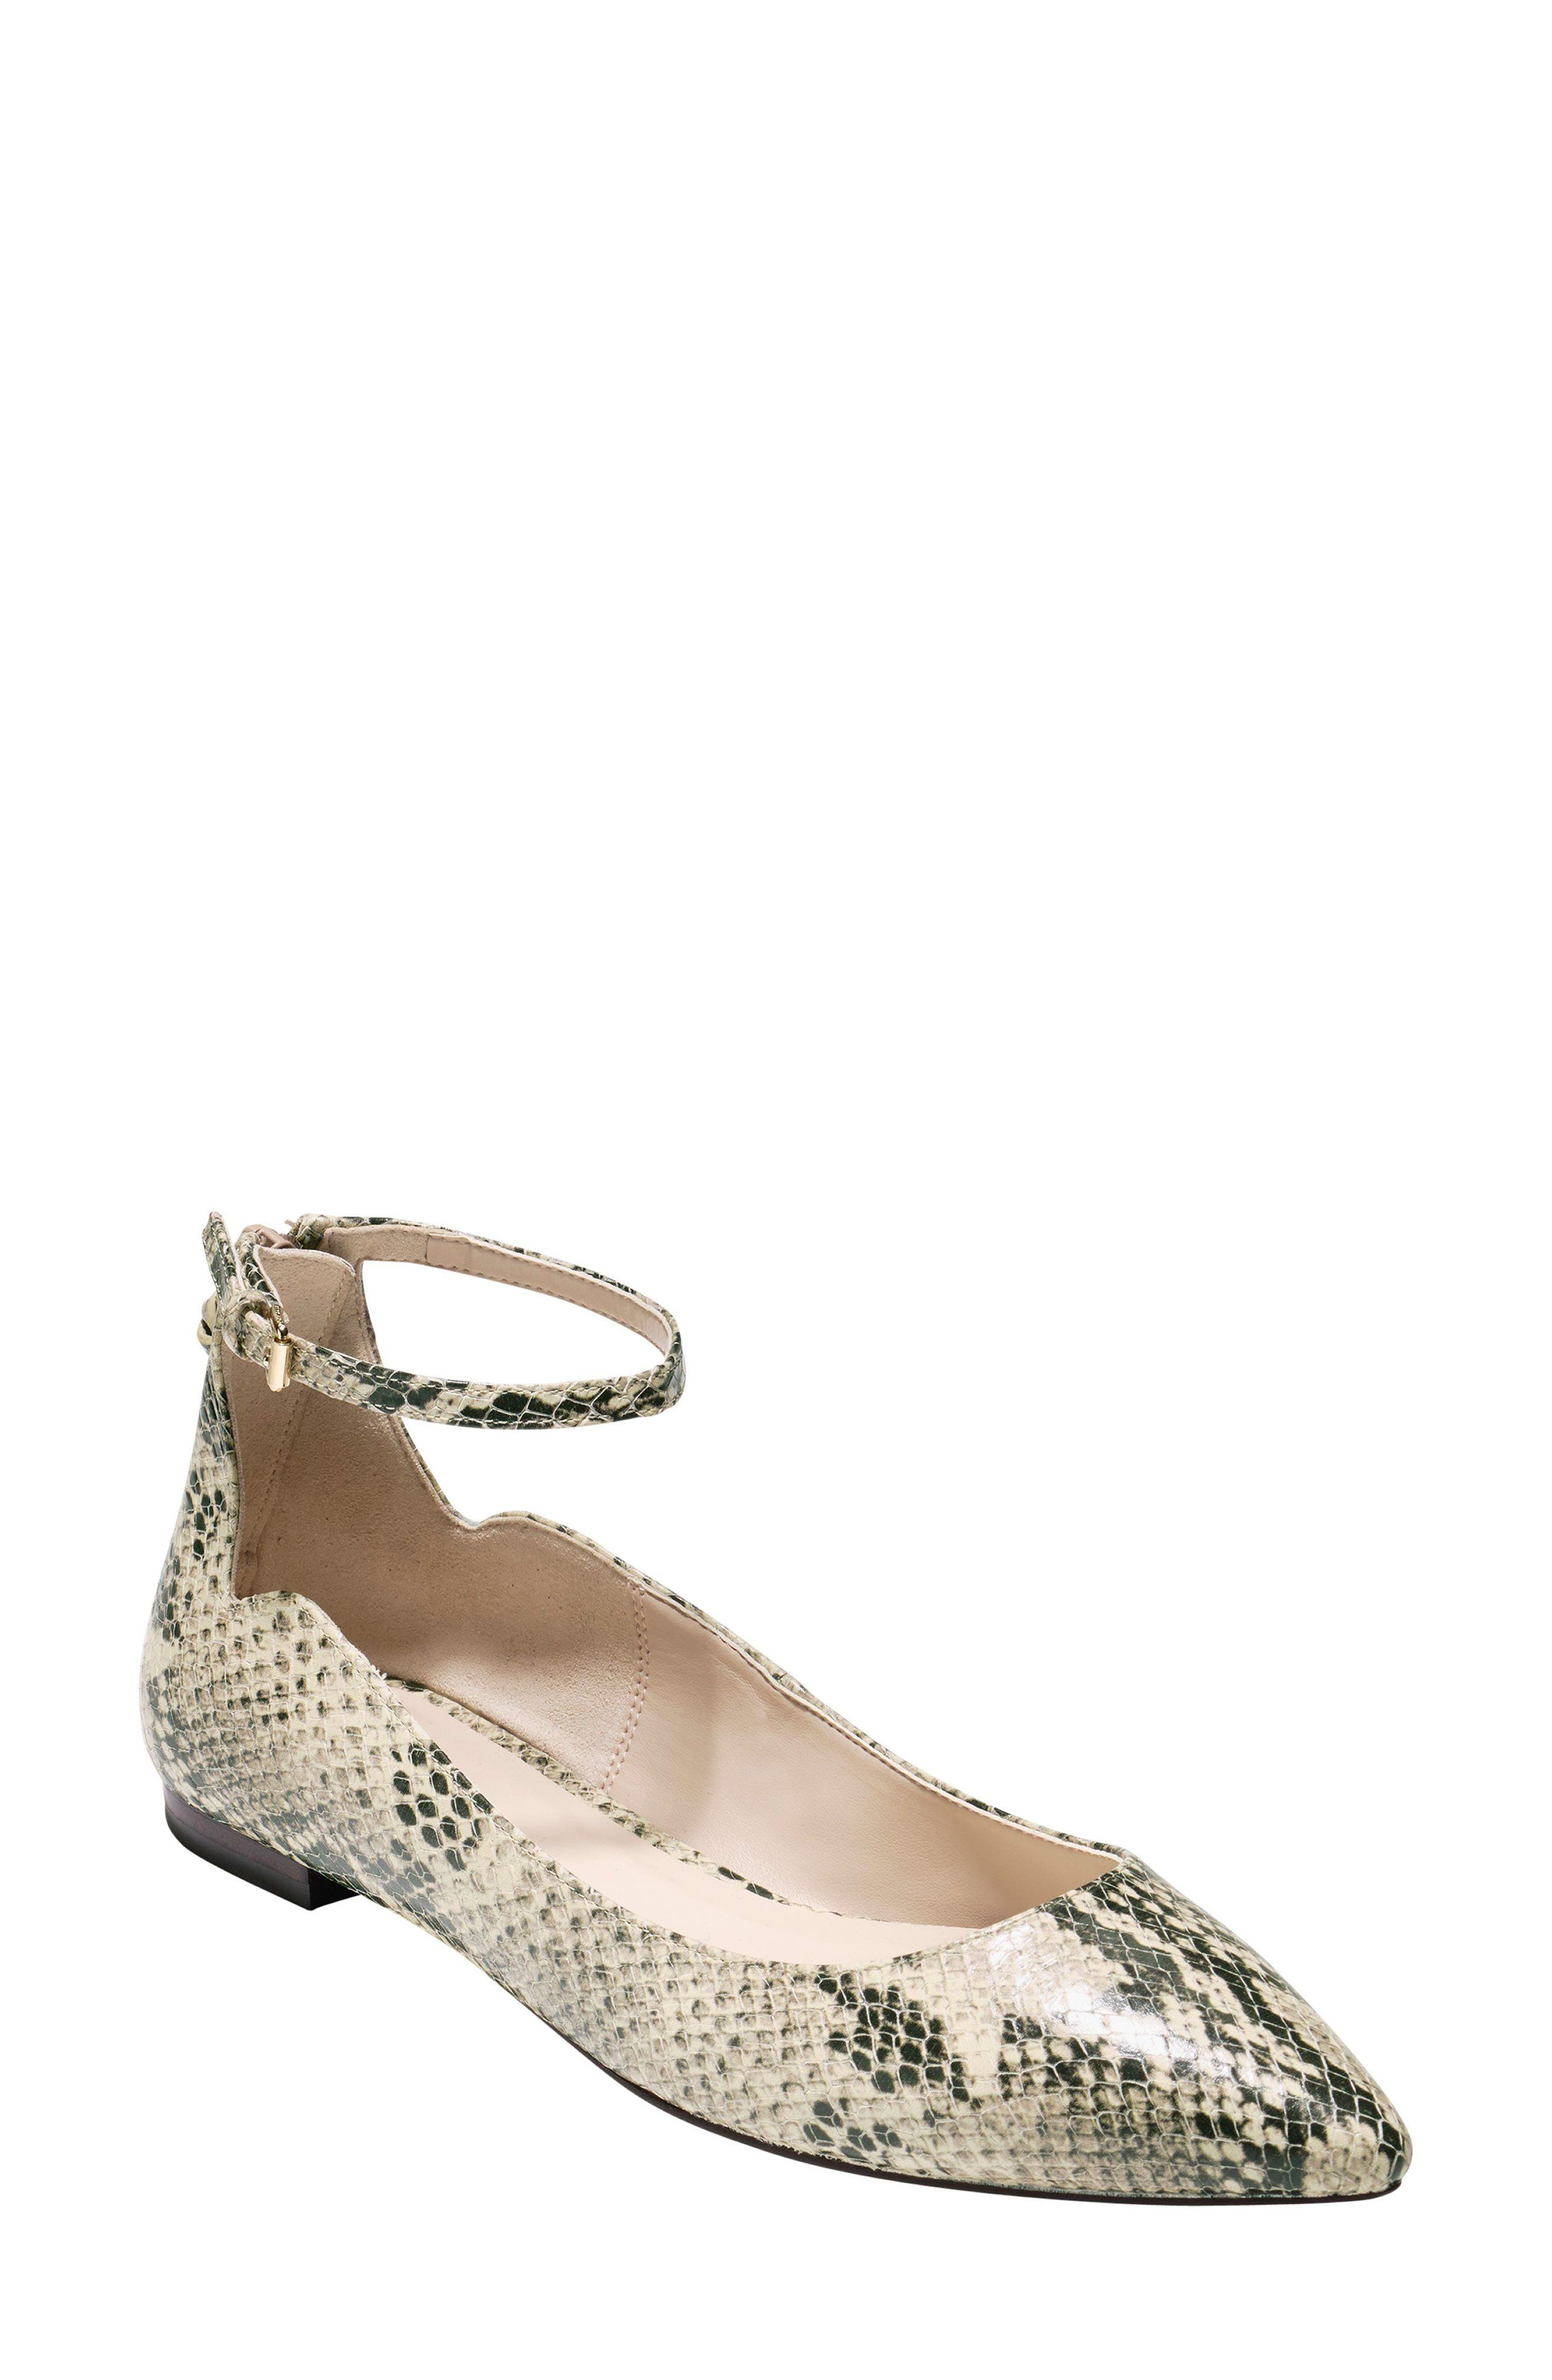 Millicent Ankle Strap Skimmer Flat,                         Main,                         color, Roccia Snake Print Leather